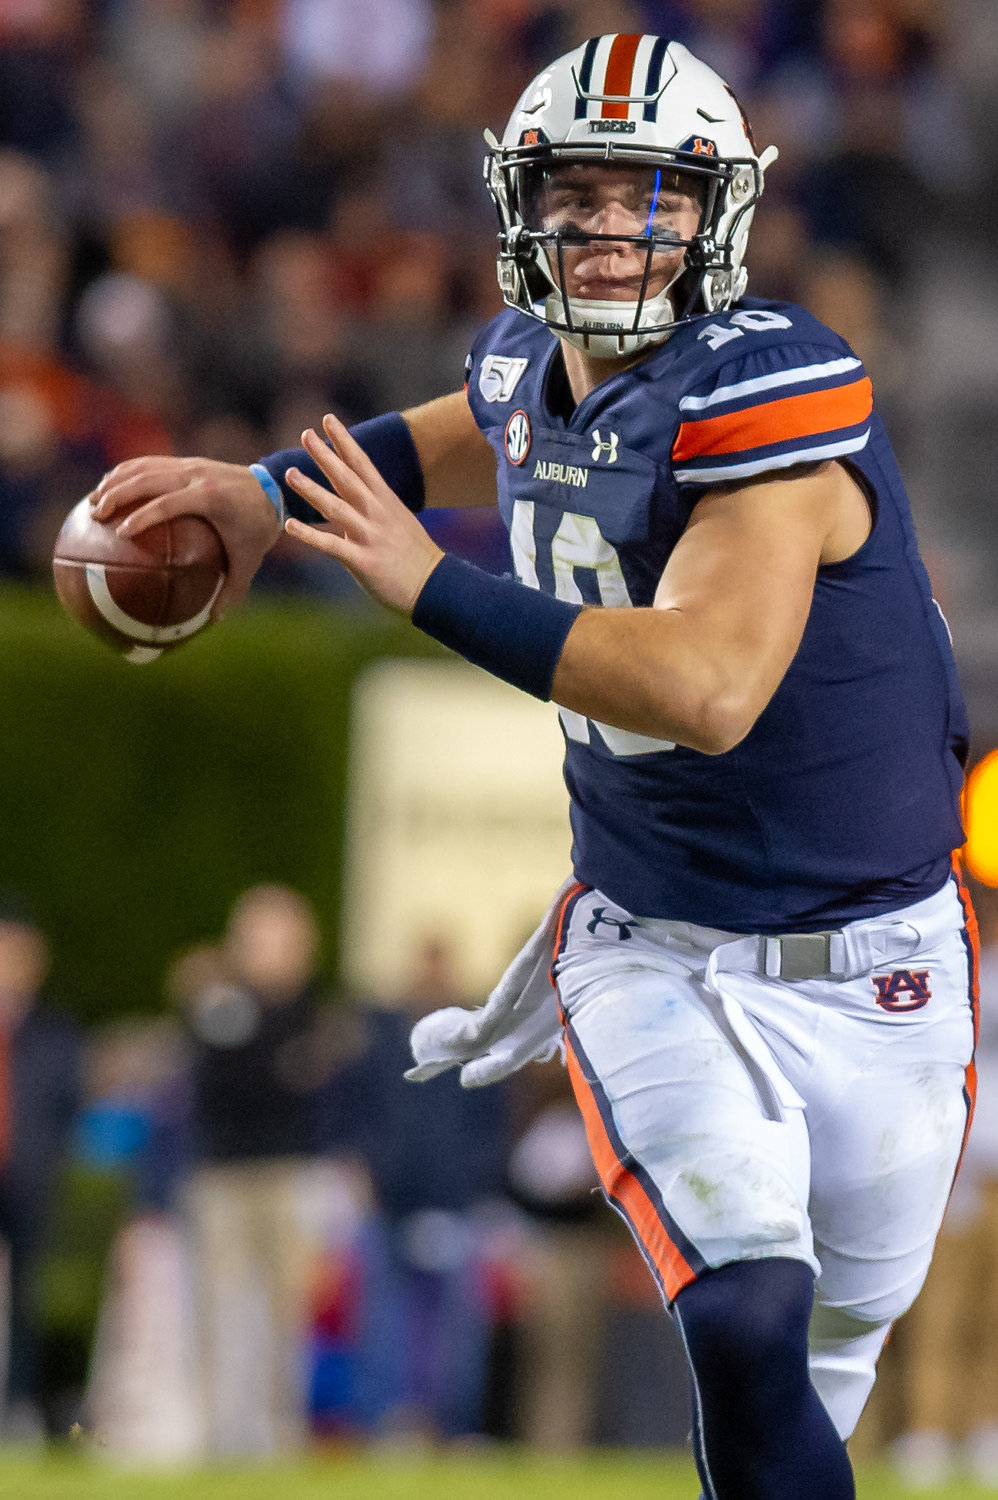 Auburn Tigers quarterback Bo Nix (10) throws during the second half of Saturday's game, at Jordan-Hare Stadium in Auburn. Nix completed 30 of 44 passes for 340 yards in the Tigers' 20-14 win.